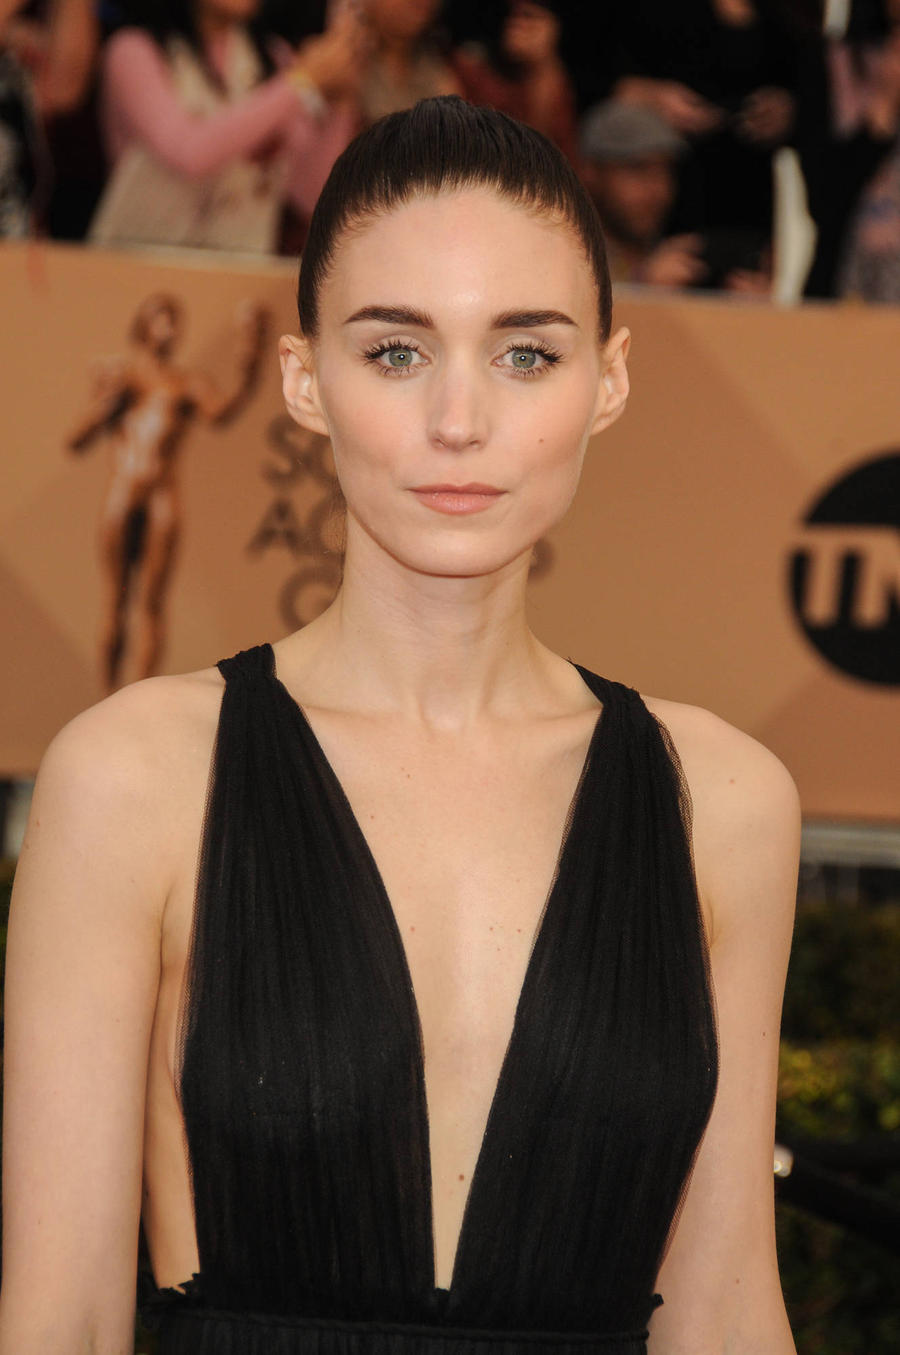 Rooney Mara In Talks To Portray Mary Magdalene In New Biopic